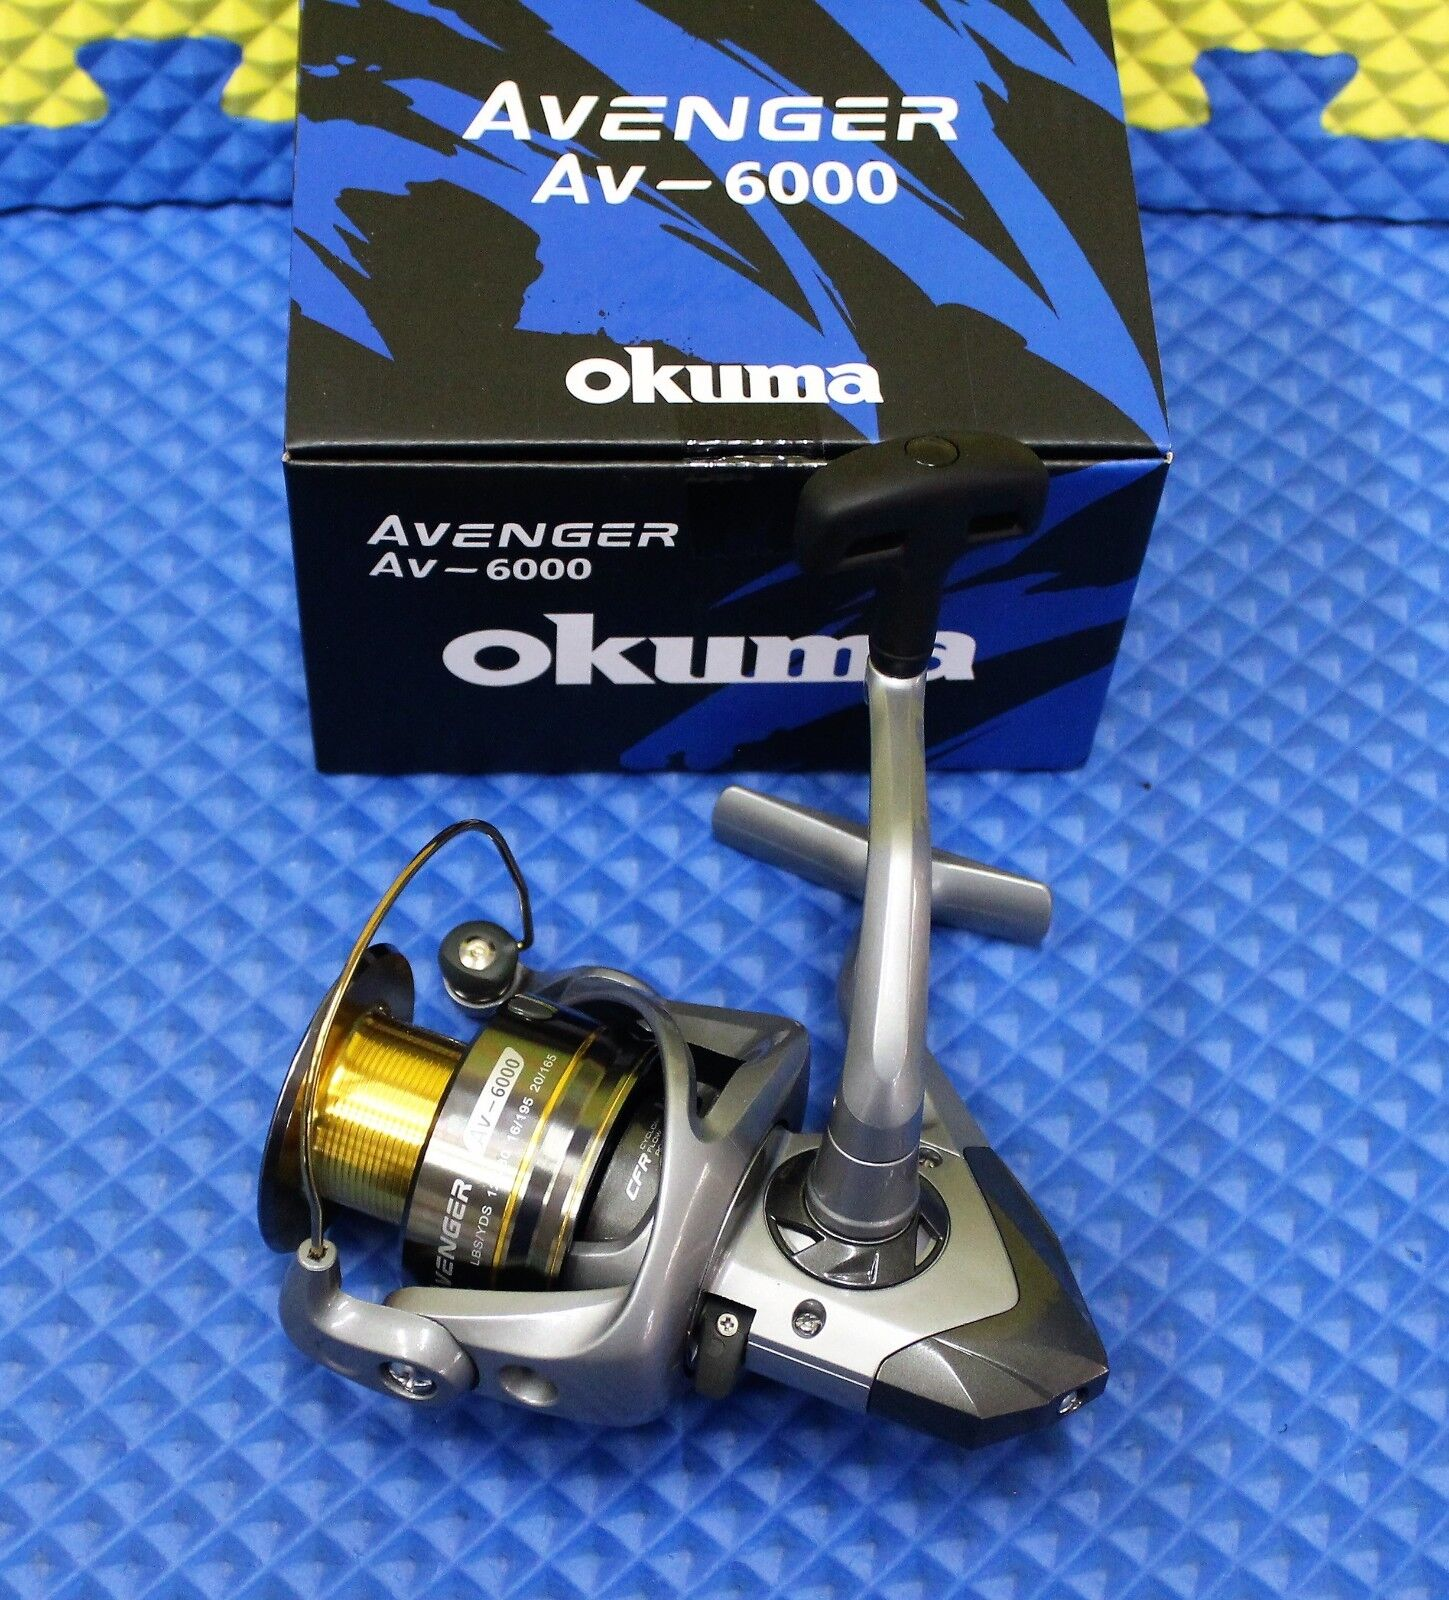 Okuma Avenger AV-6000 Spinning Reel NEW FOR 2019 AV-6000